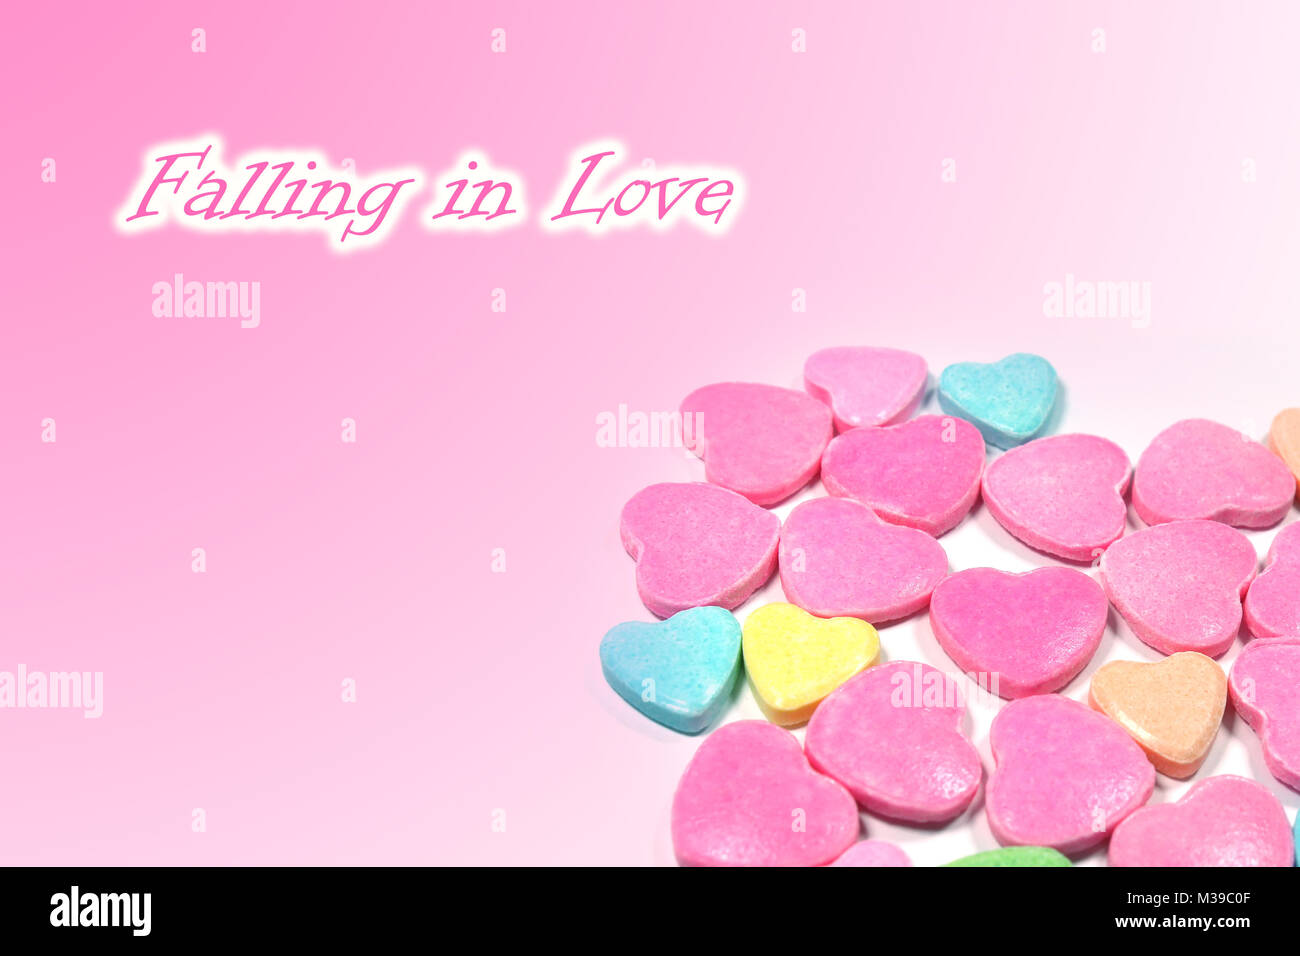 Abstract love candy for Falling in love concept - Stock Image